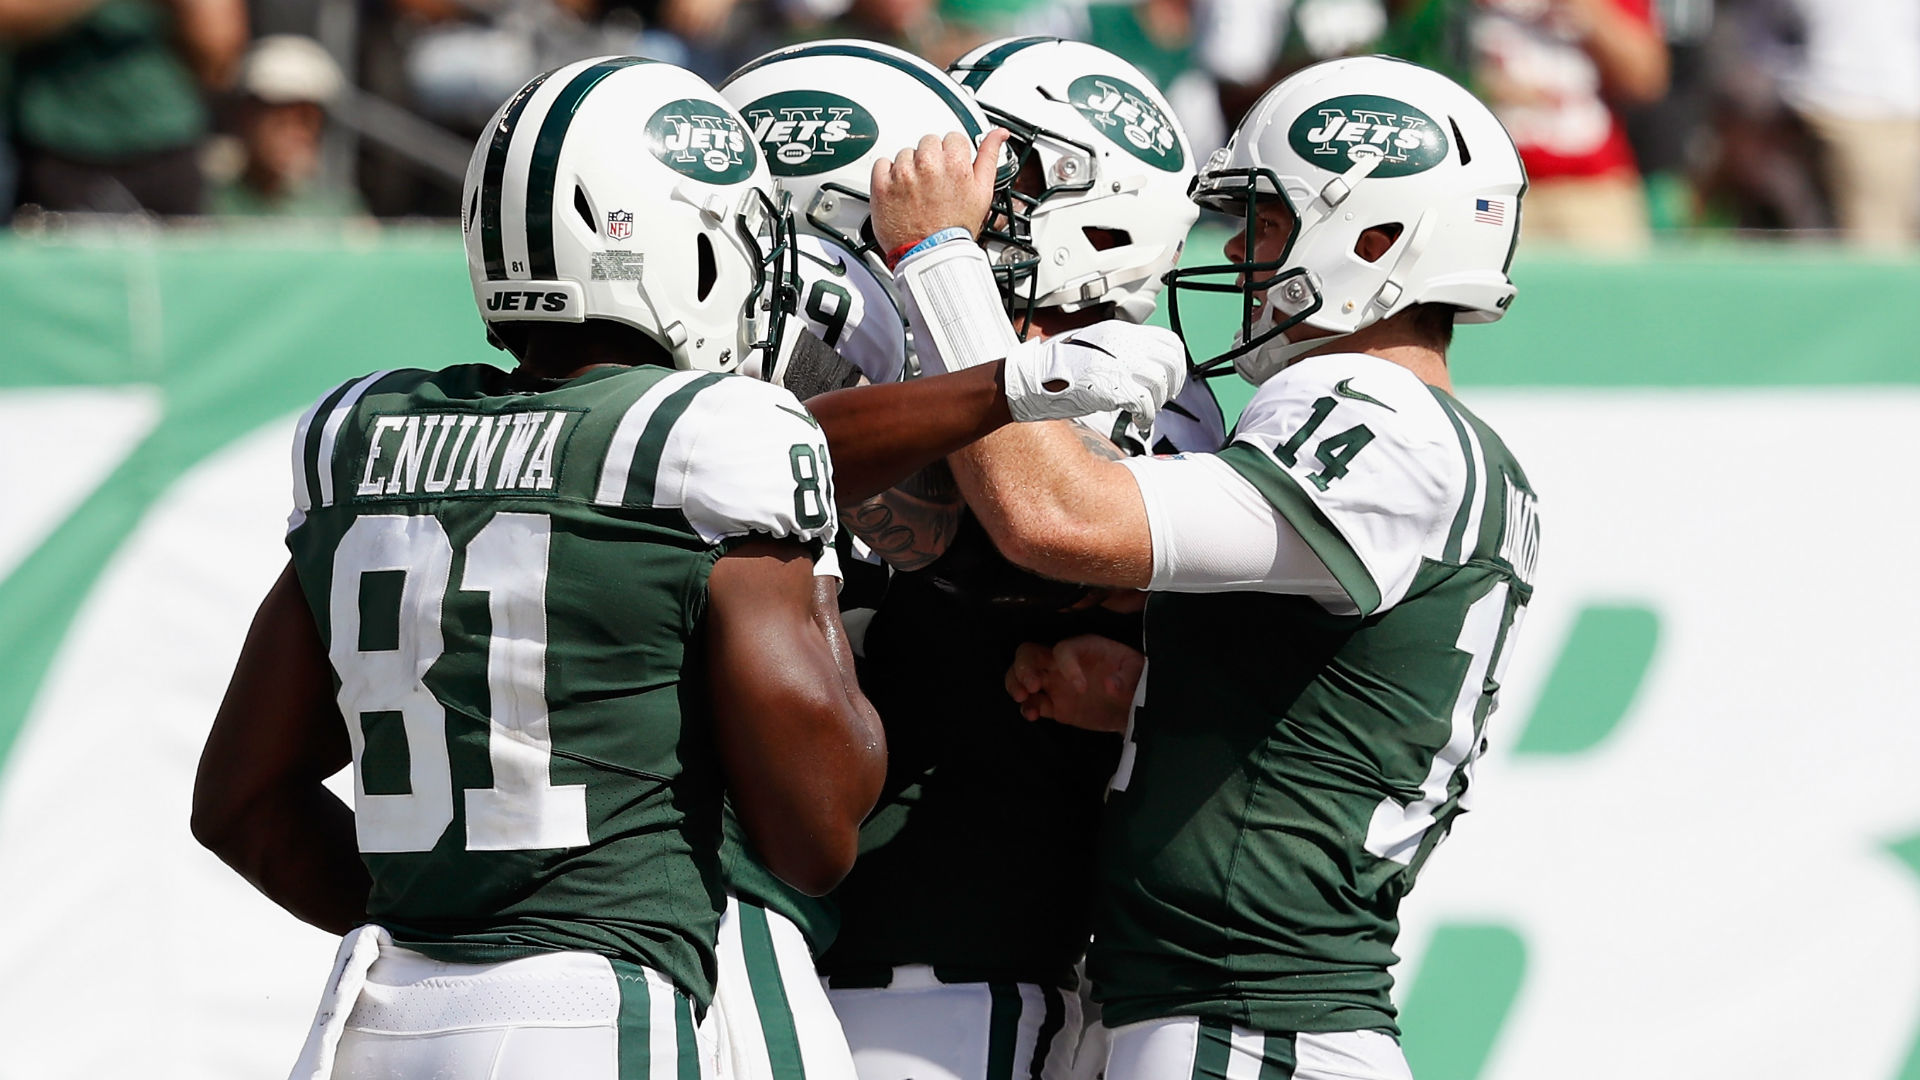 New York Jets 2018 season schedule, scores and TV streams in Canada | Sporting News